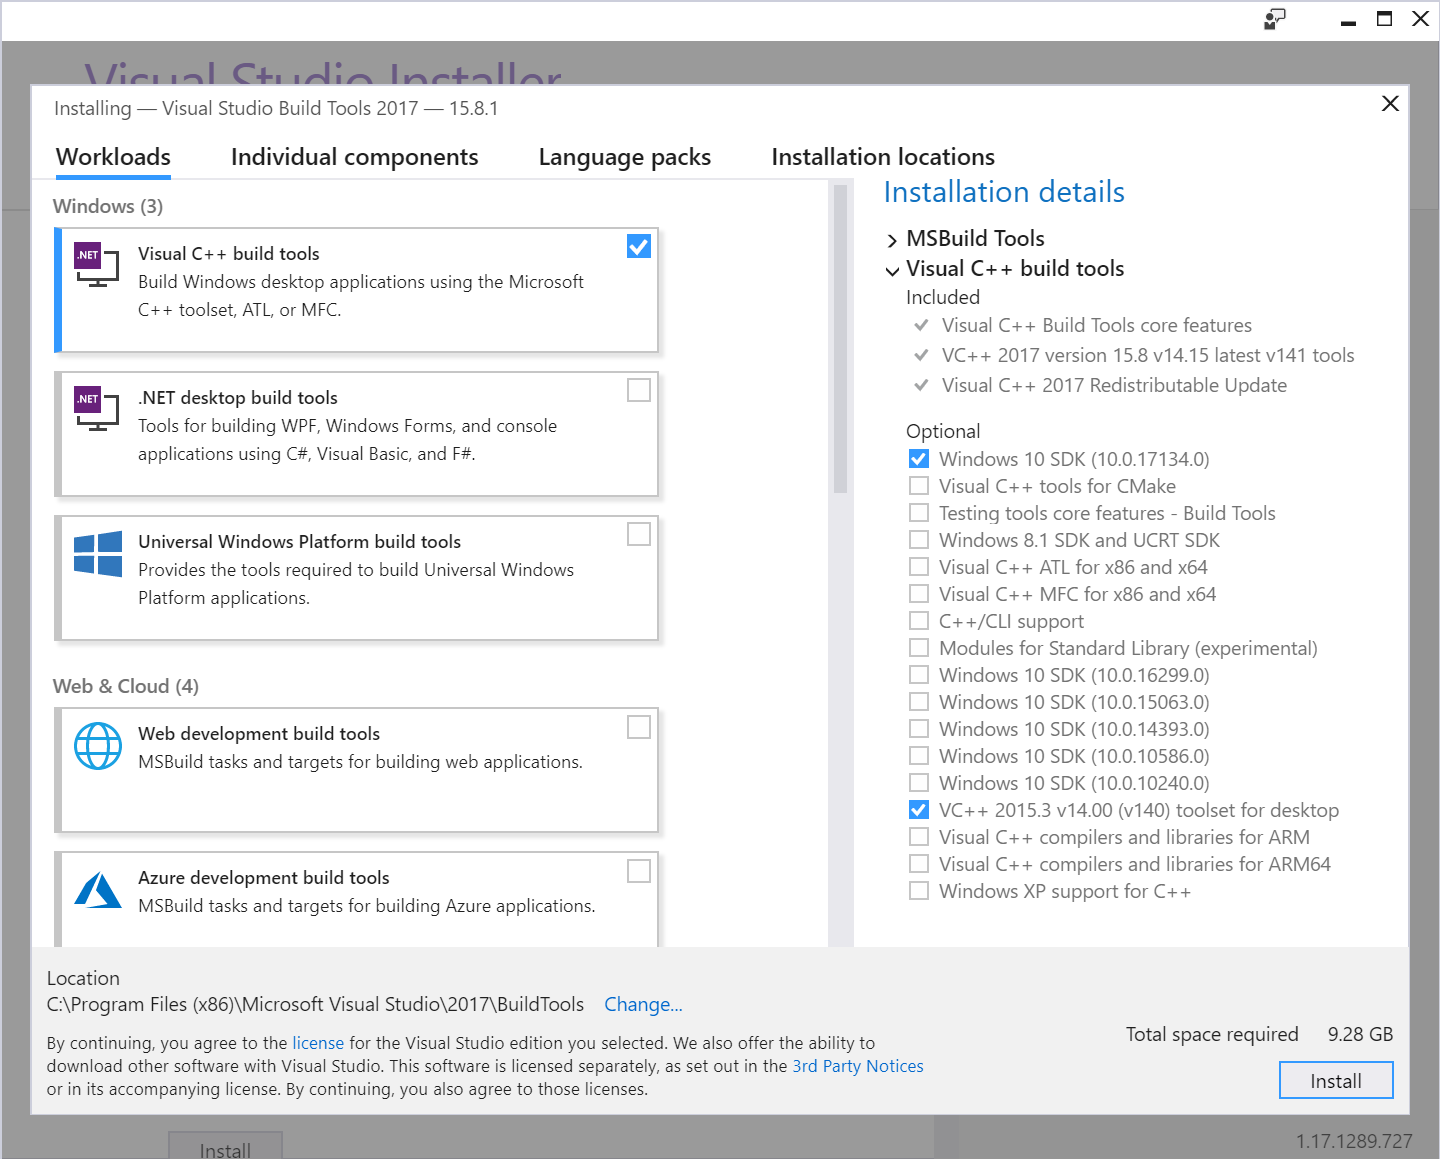 windows 8 cpu feature patch v1.5 download